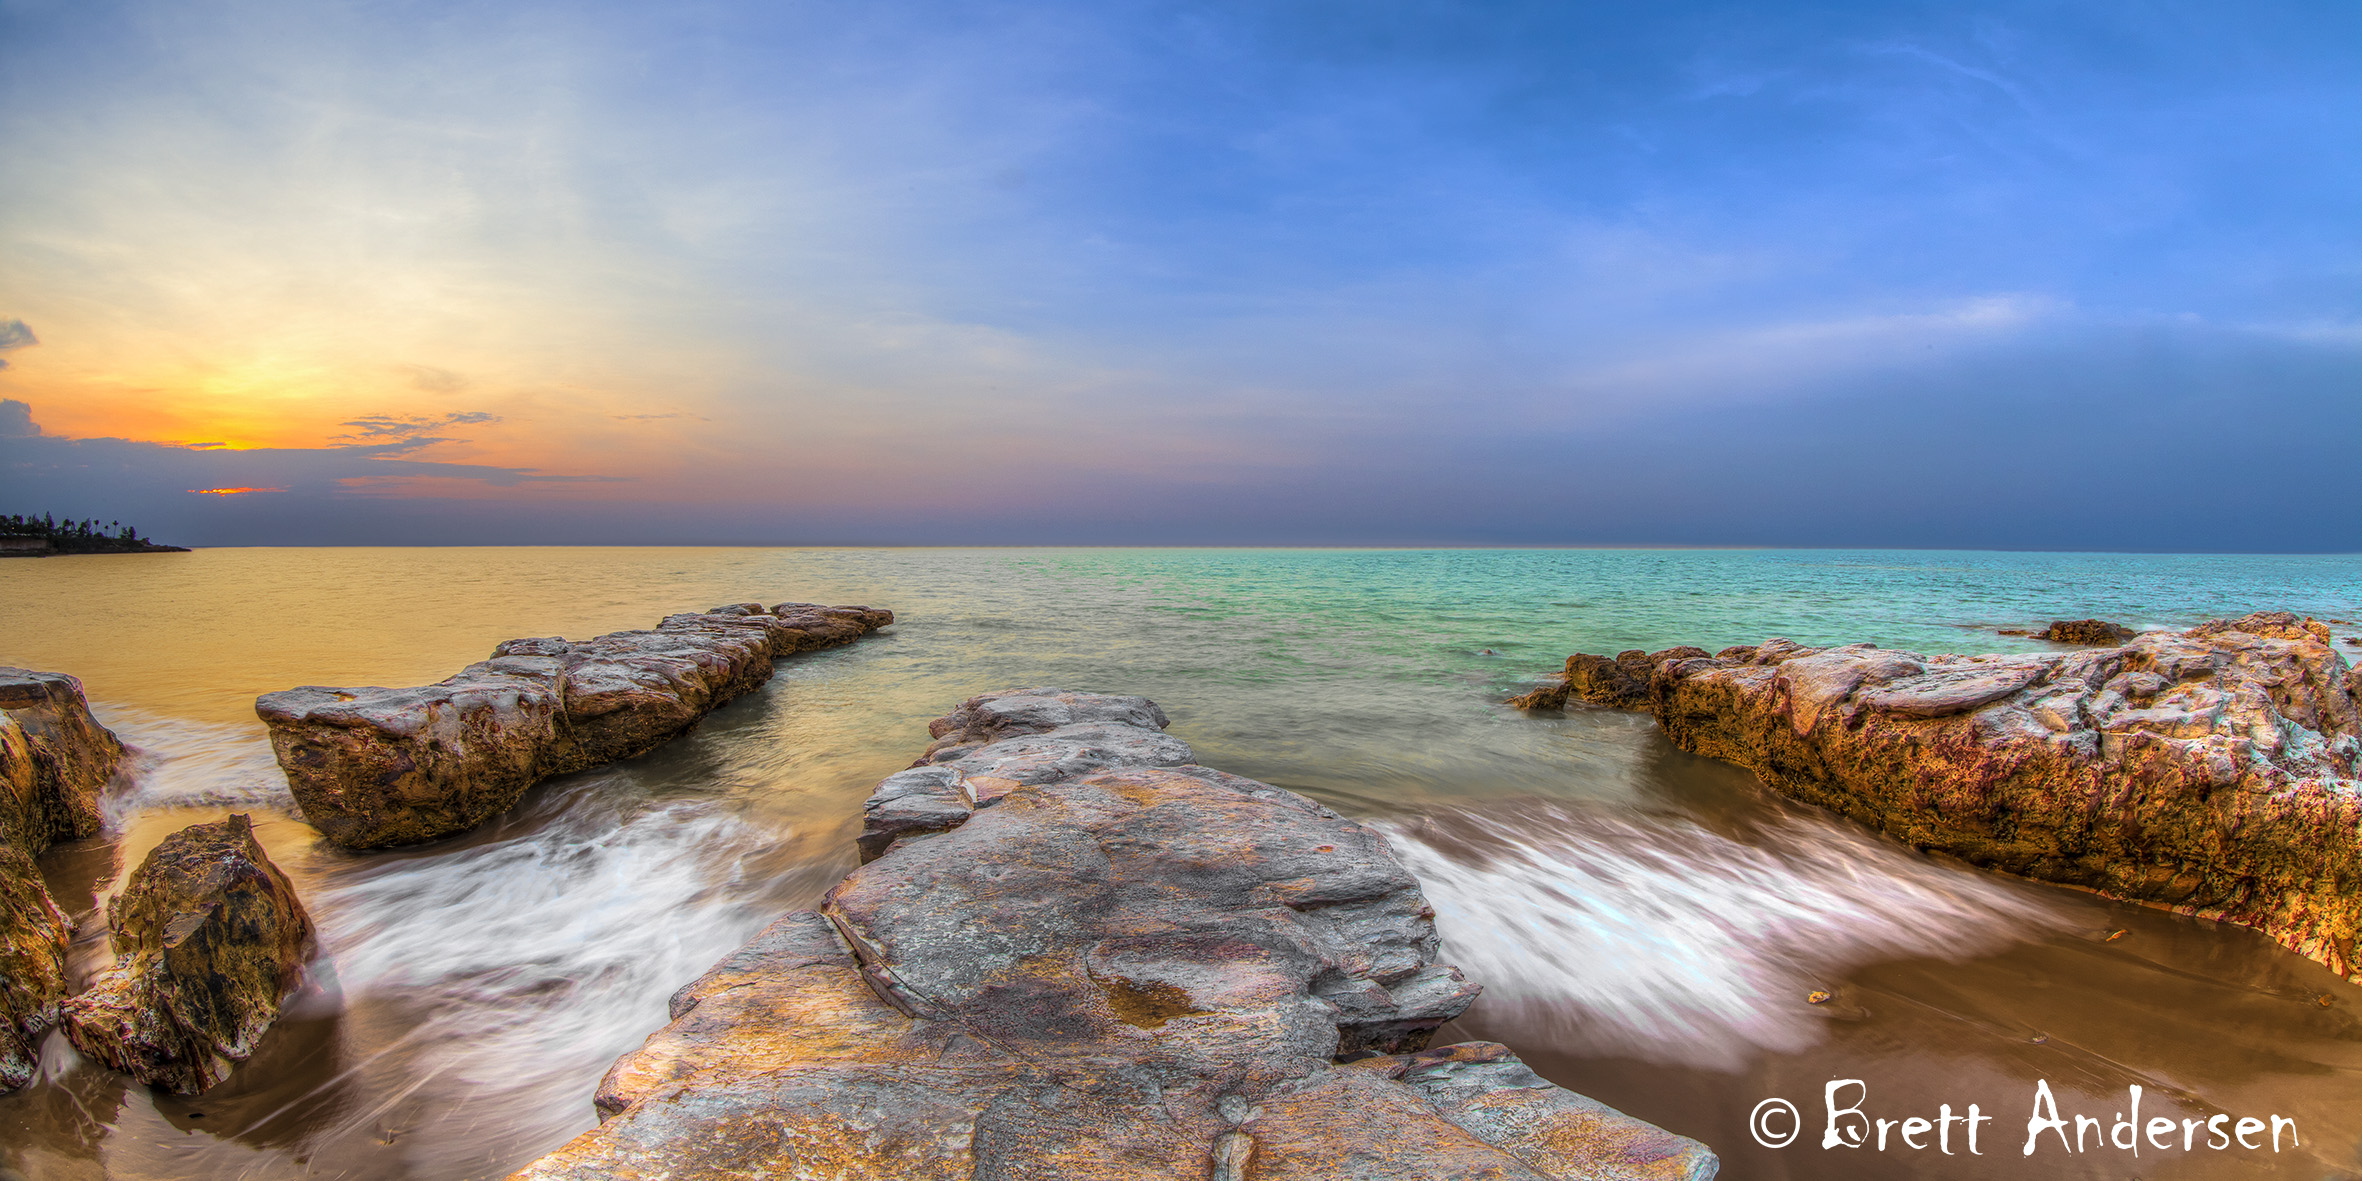 Nightcliff_6219 - PANO - Web